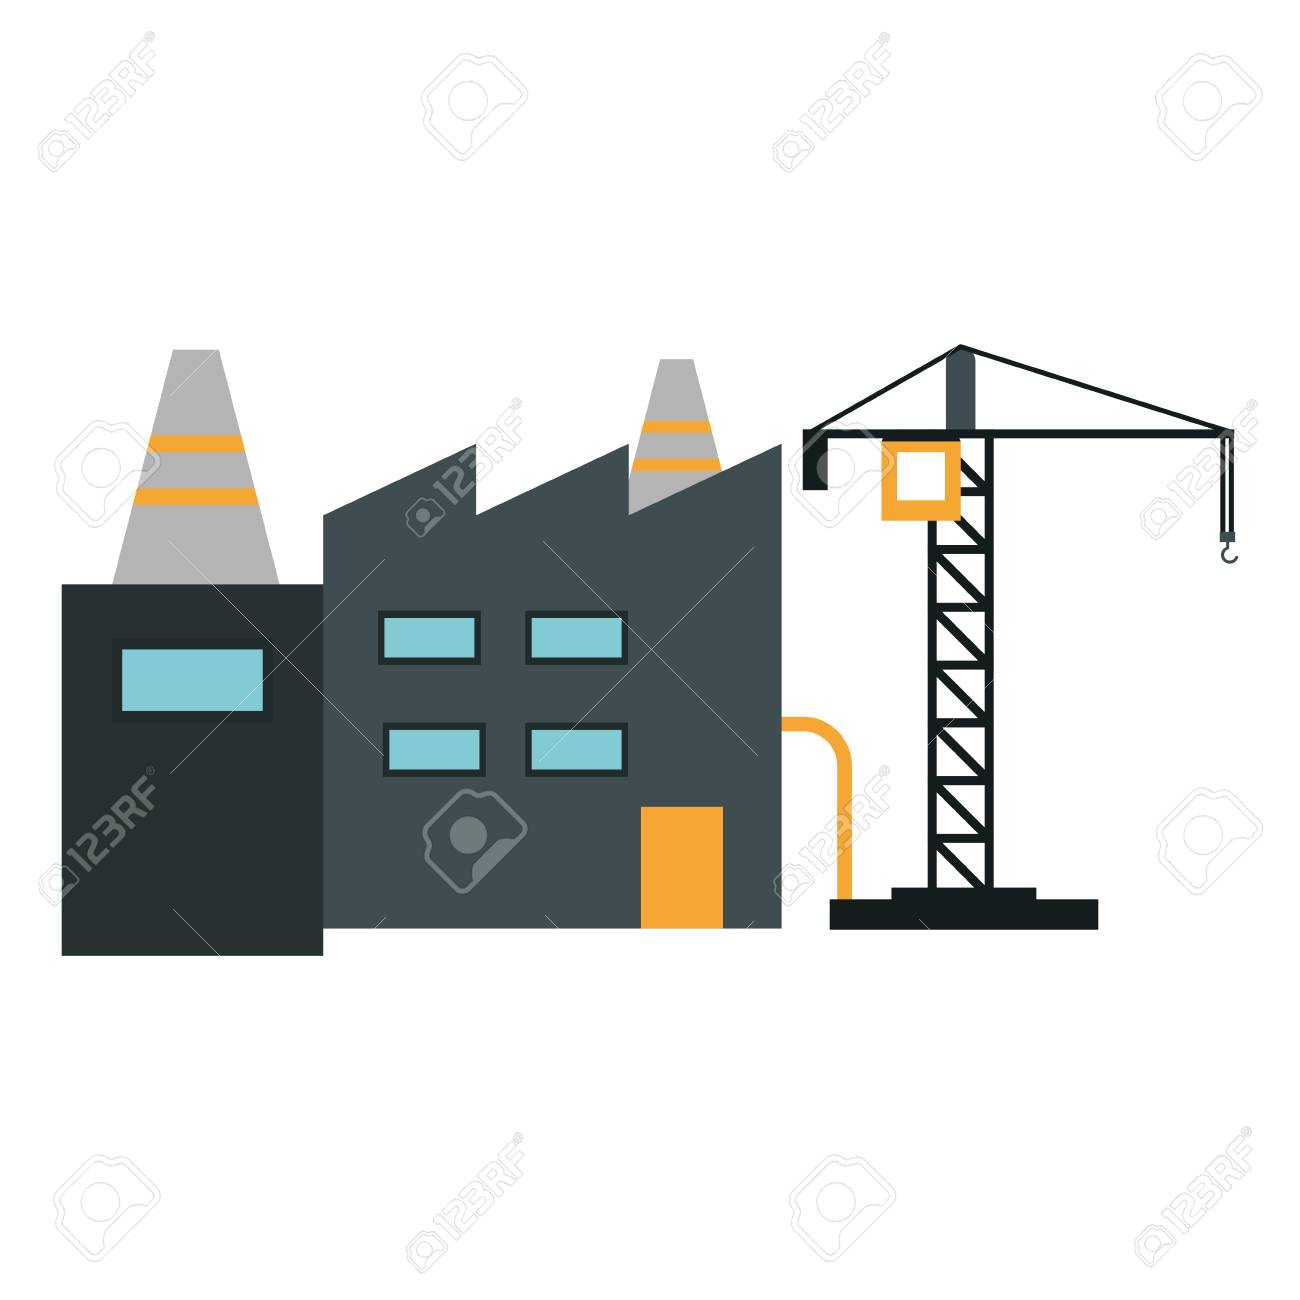 Factory and crane industrial zone vector illustration graphic design - 126159143